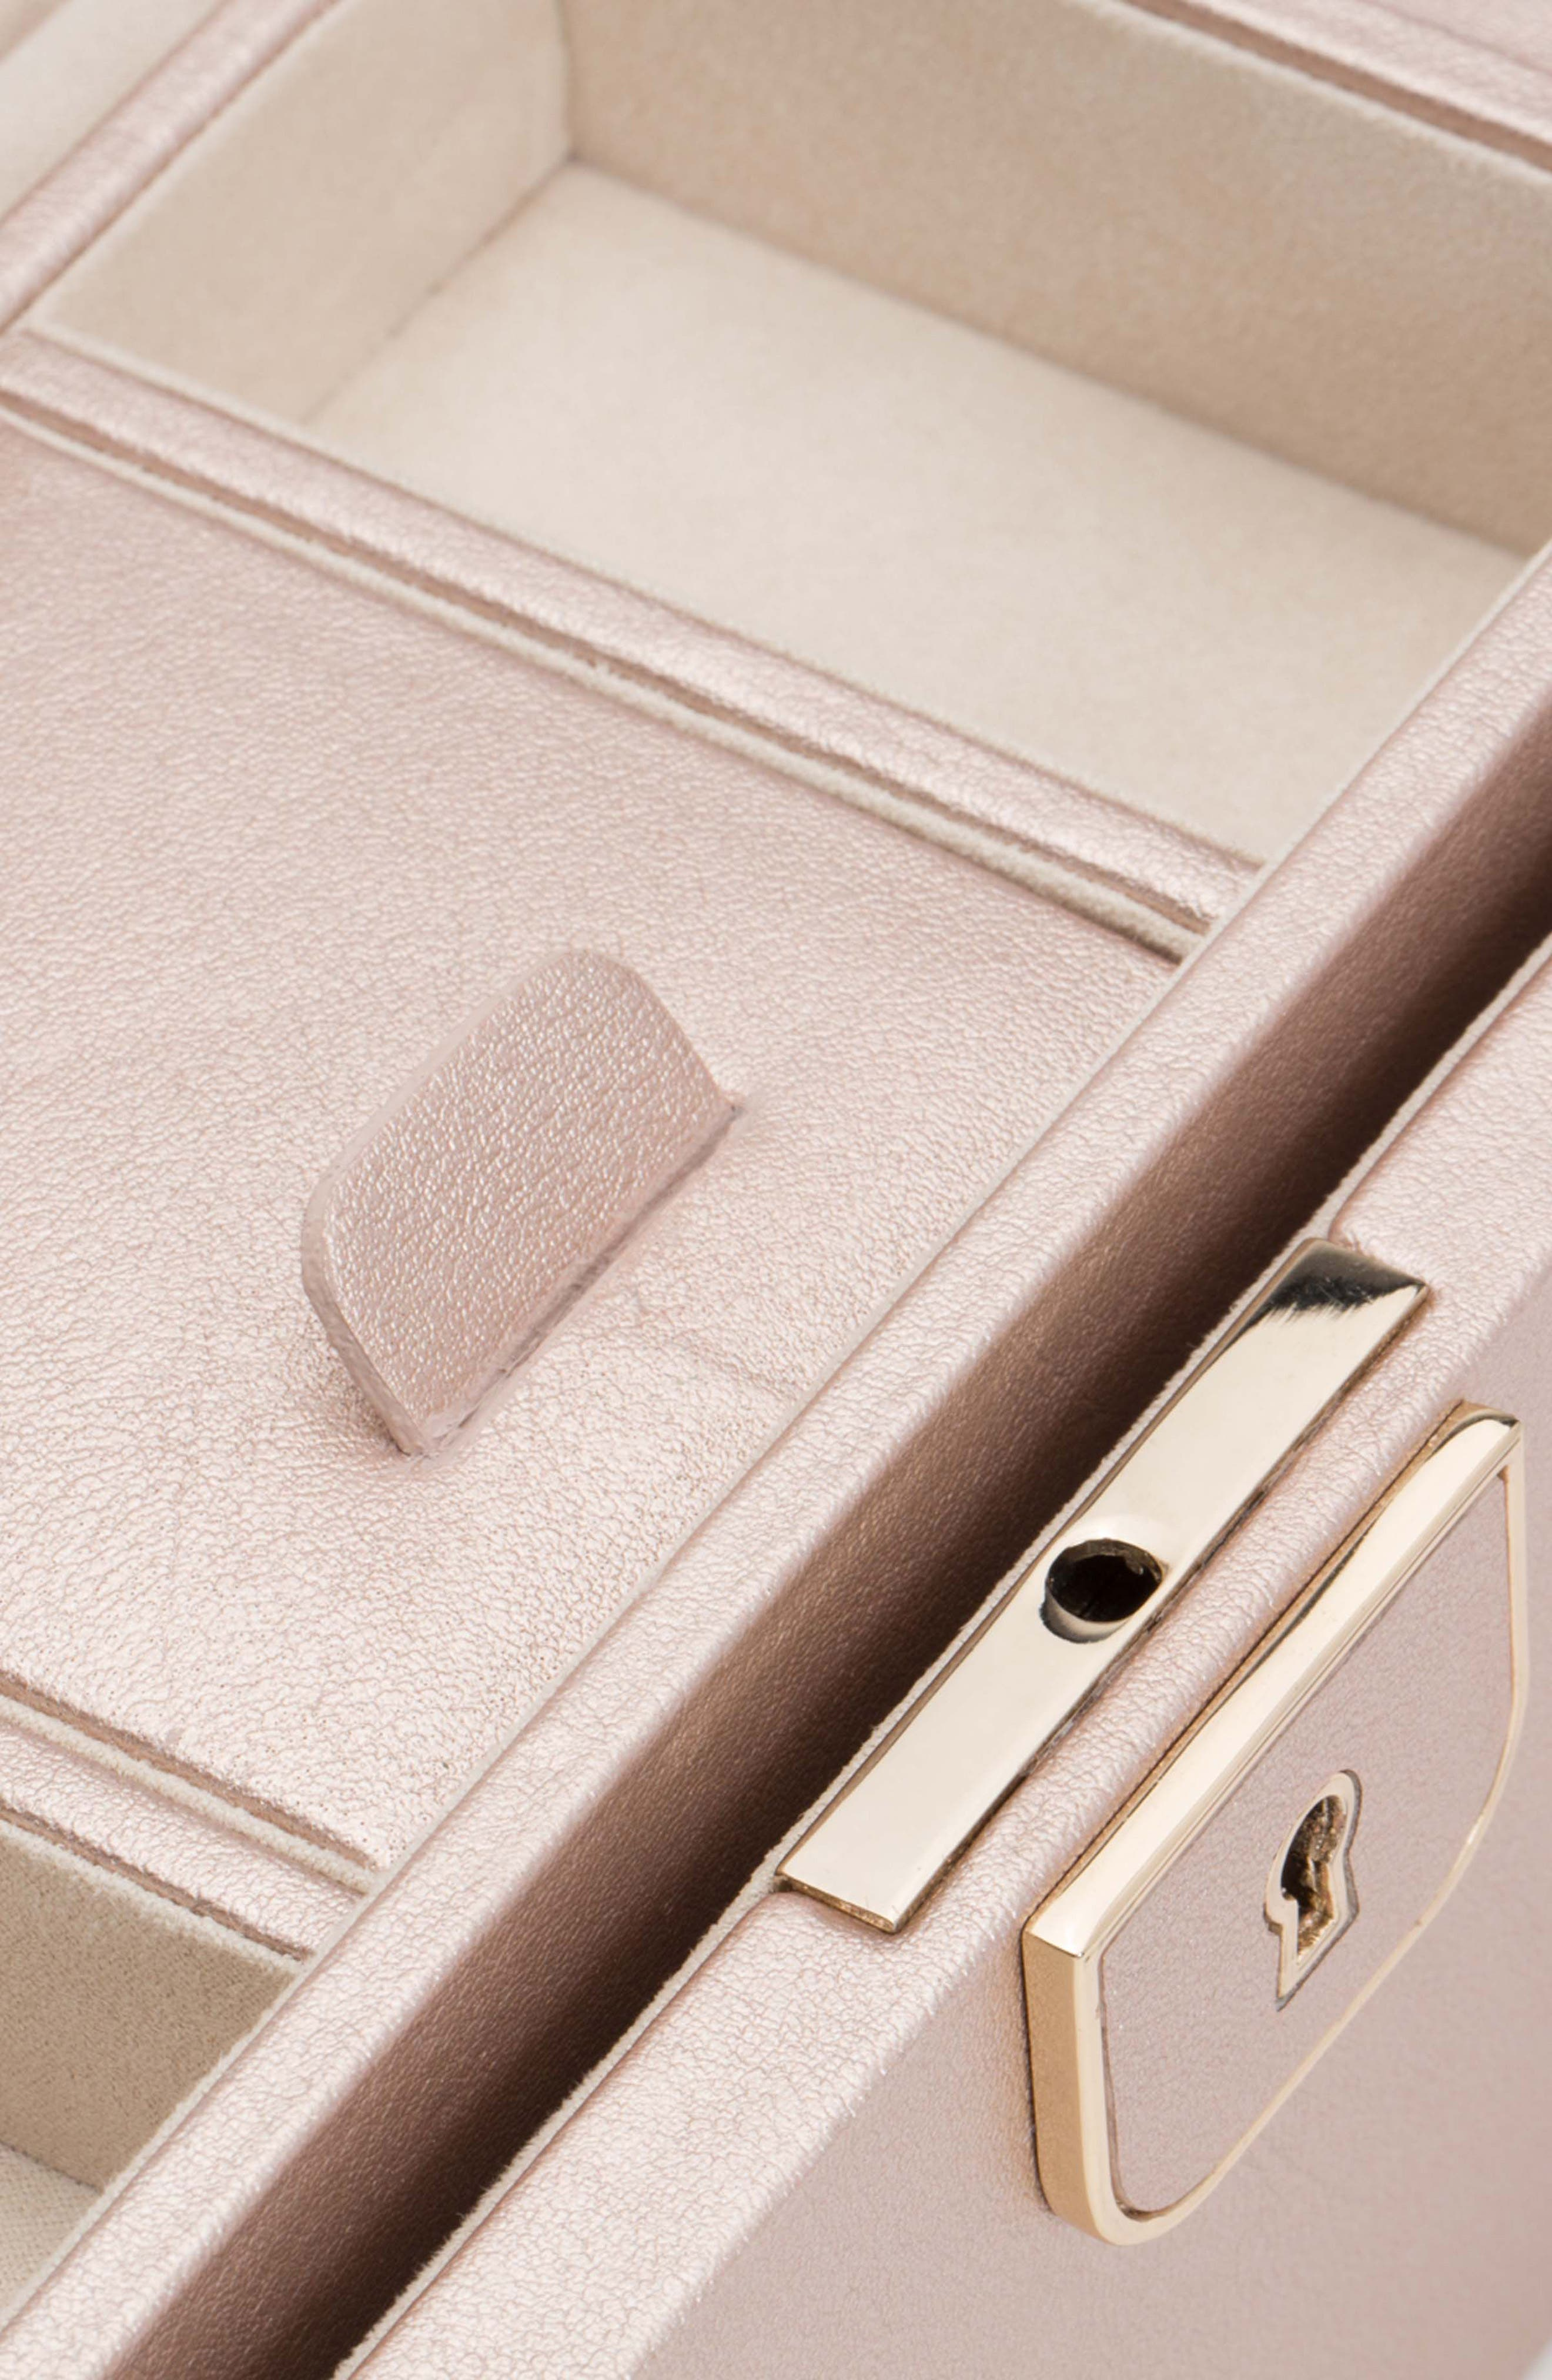 Palermo Small Jewelry Box,                             Alternate thumbnail 2, color,                             ROSE GOLD